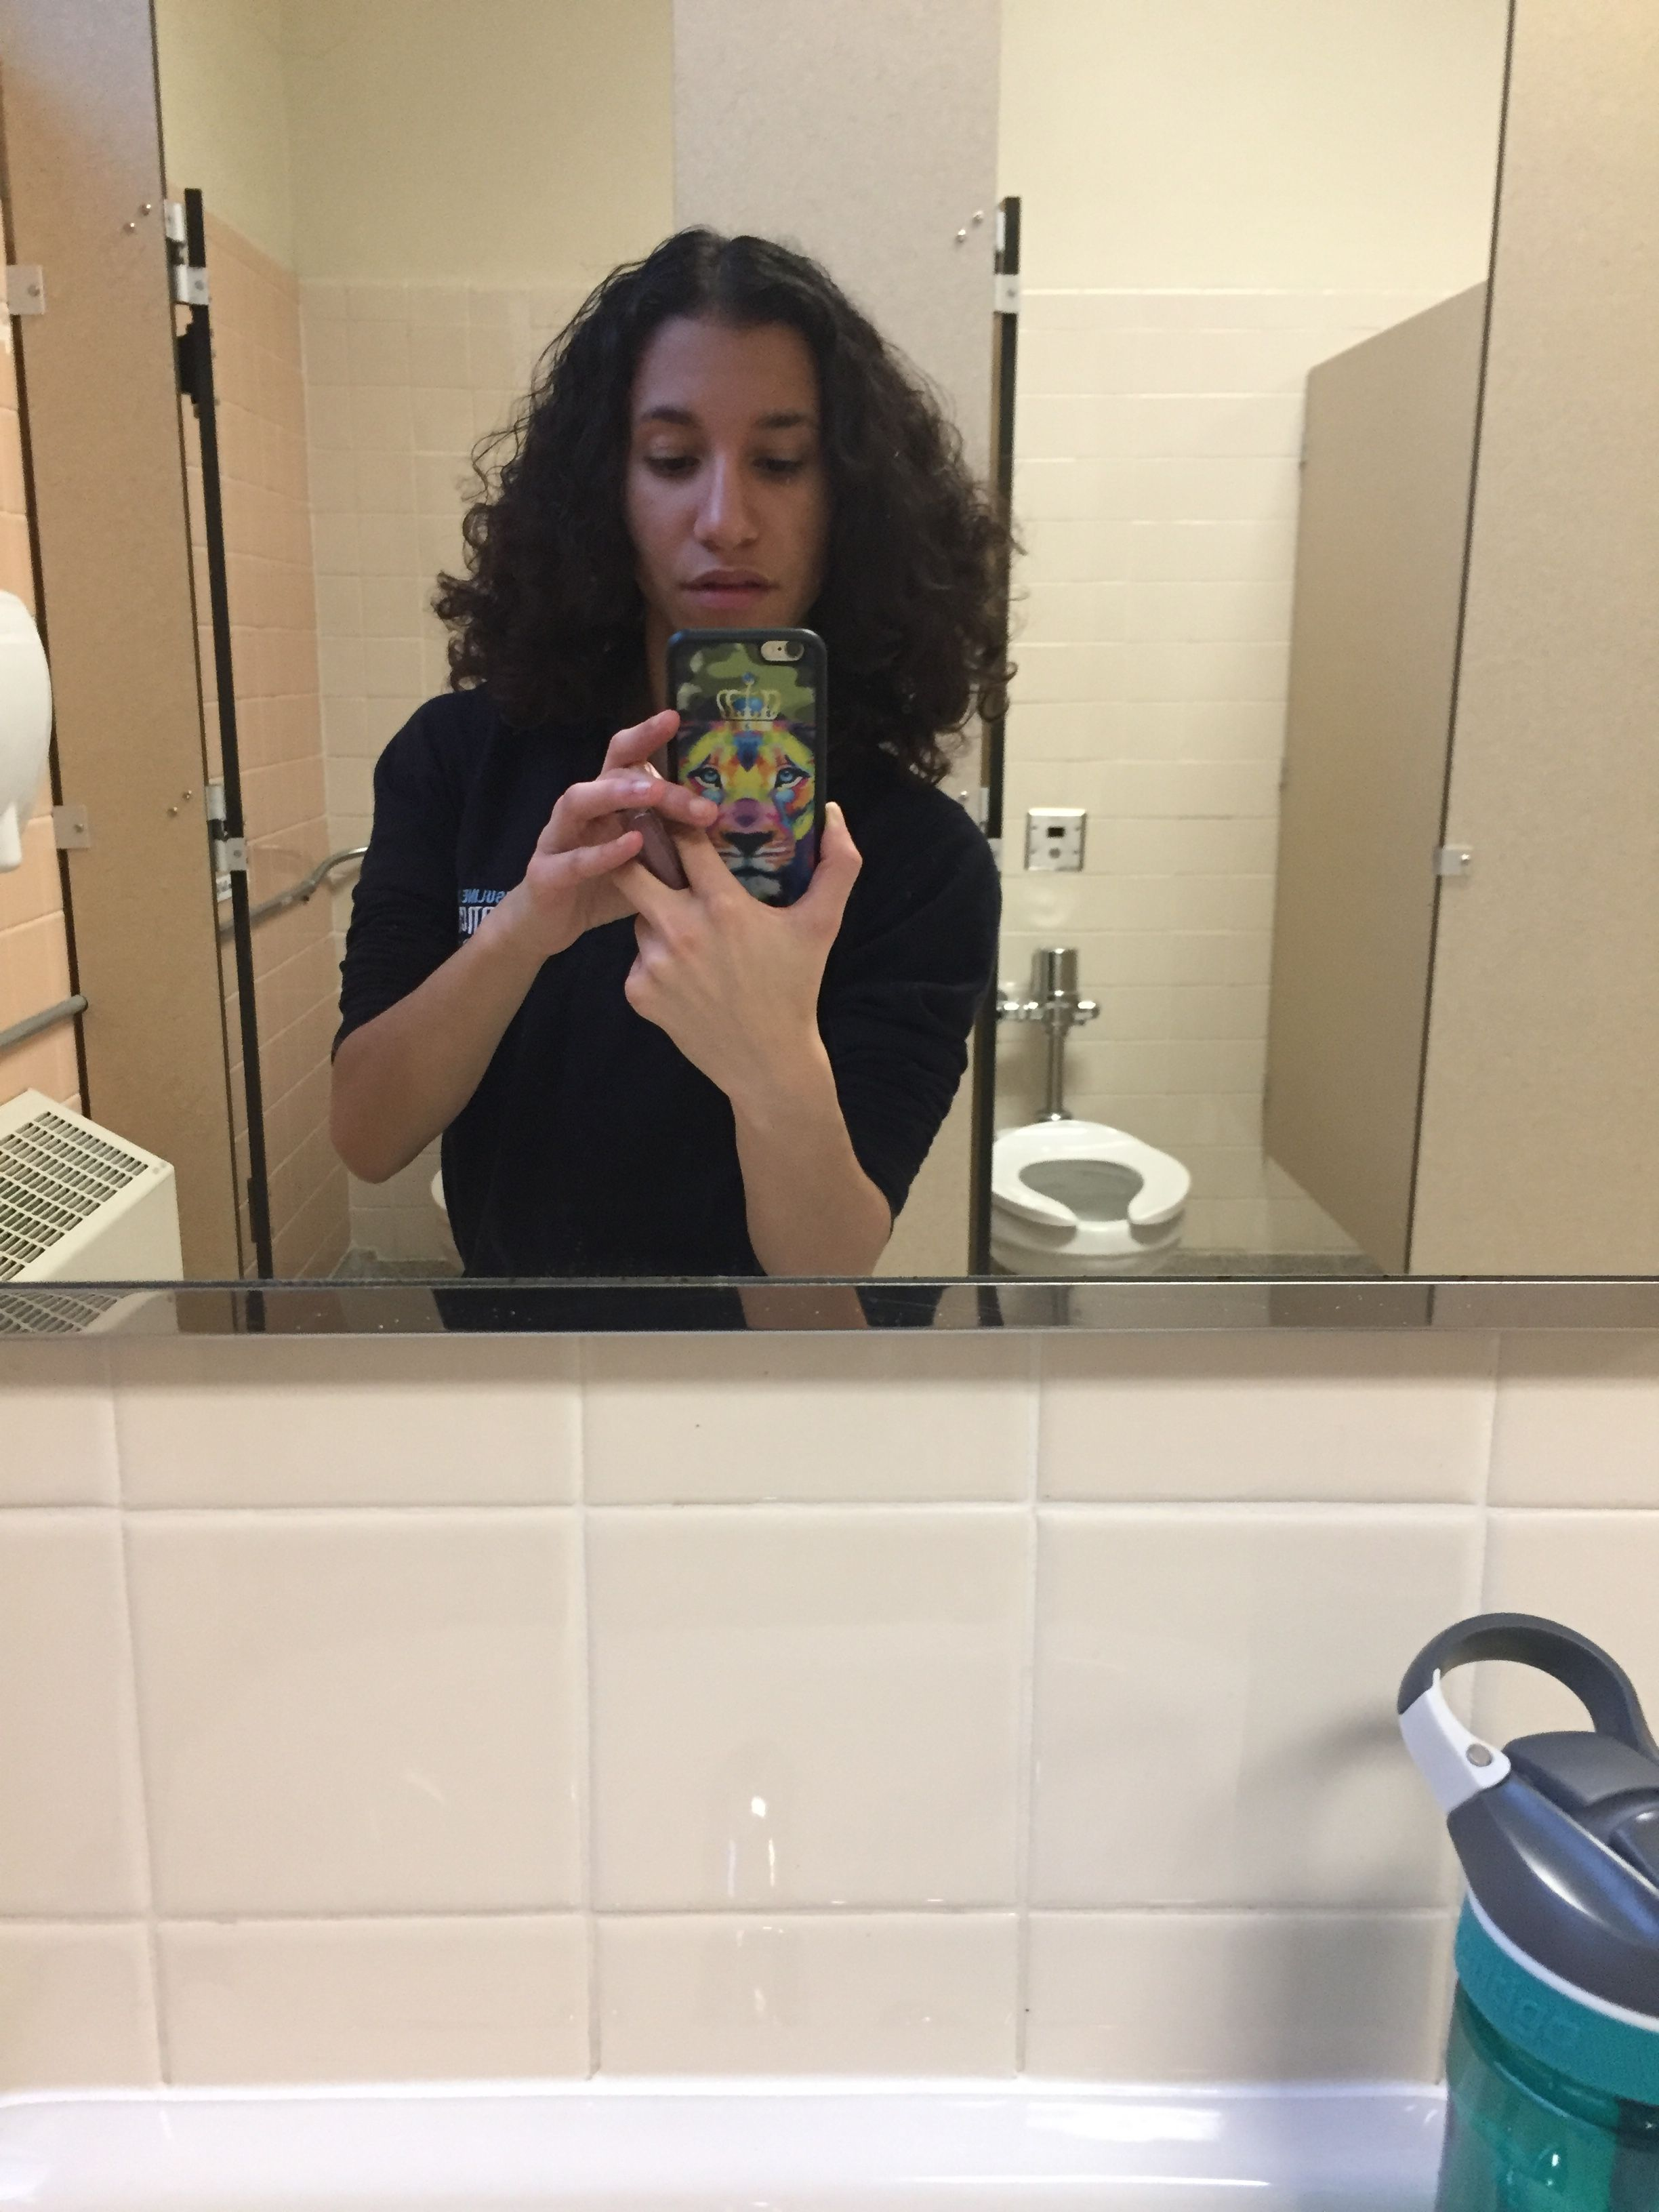 School Bathroom Selfies natural morning in the school bathroom. taking selfies cause i